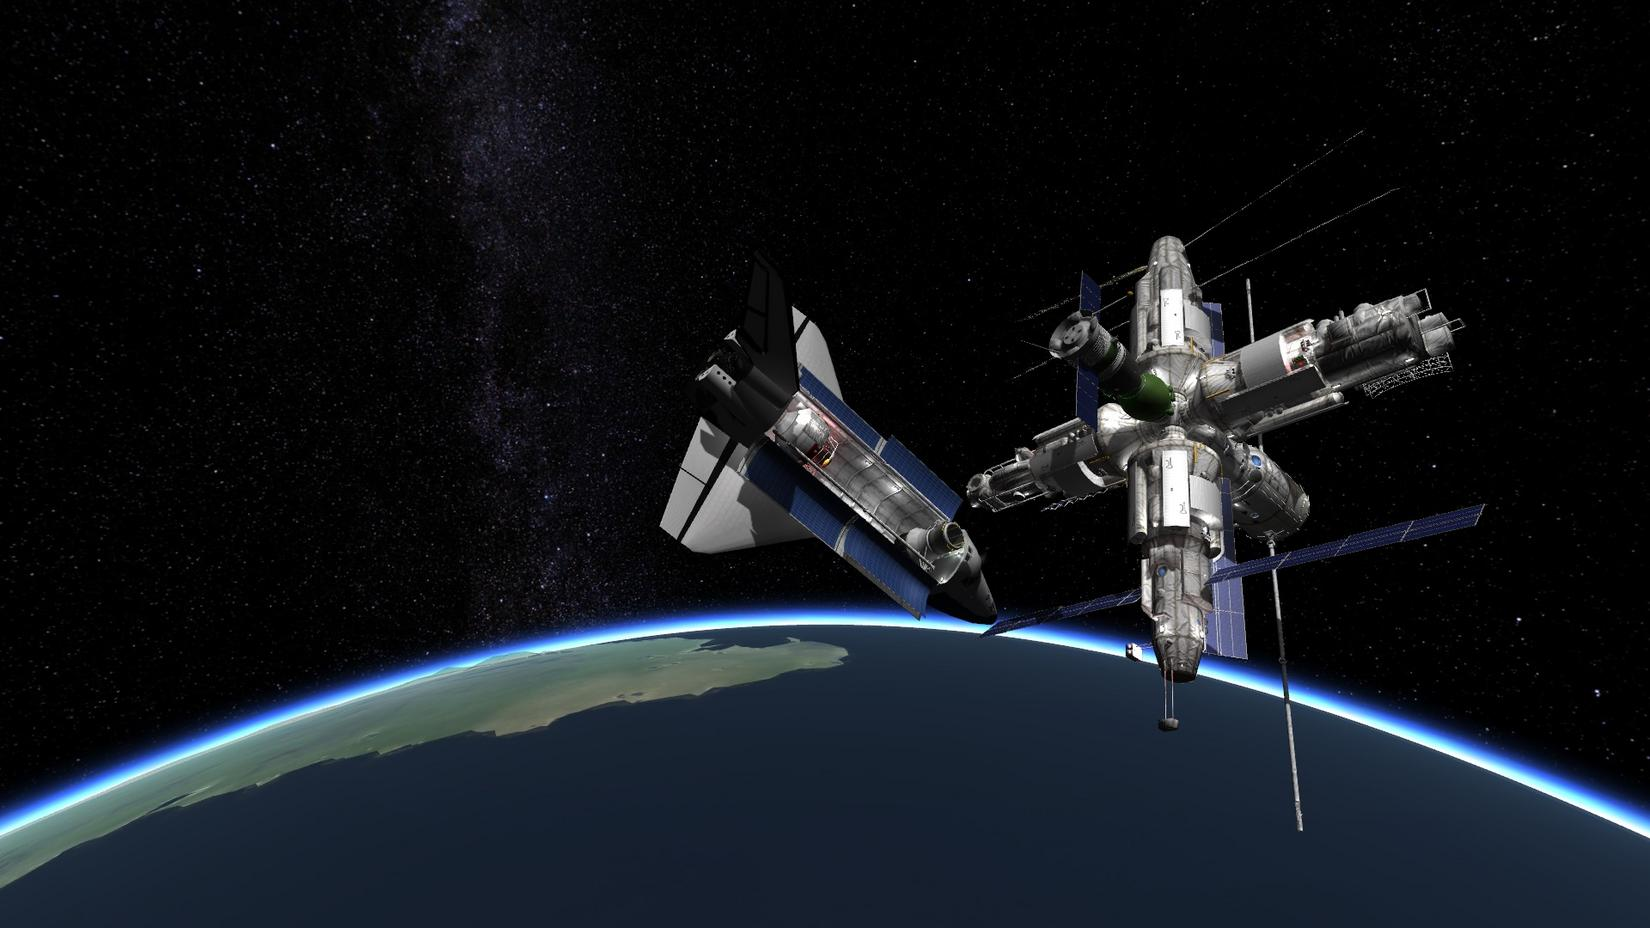 kerbal space program demo - photo #17